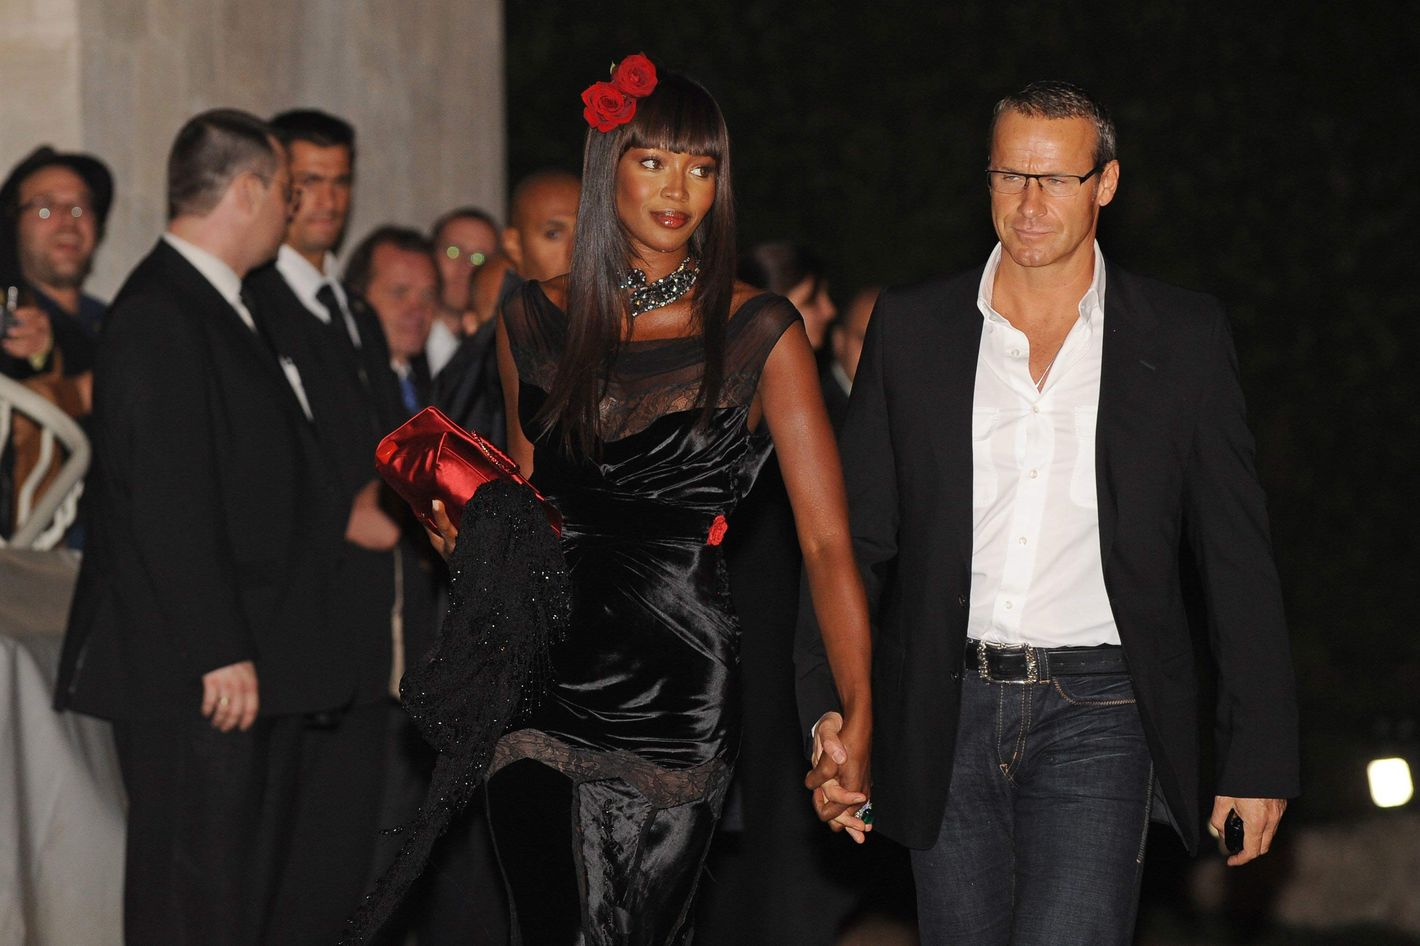 Oligarch Doronin is already making royal gifts to Naomi Campbell 07.11.2010